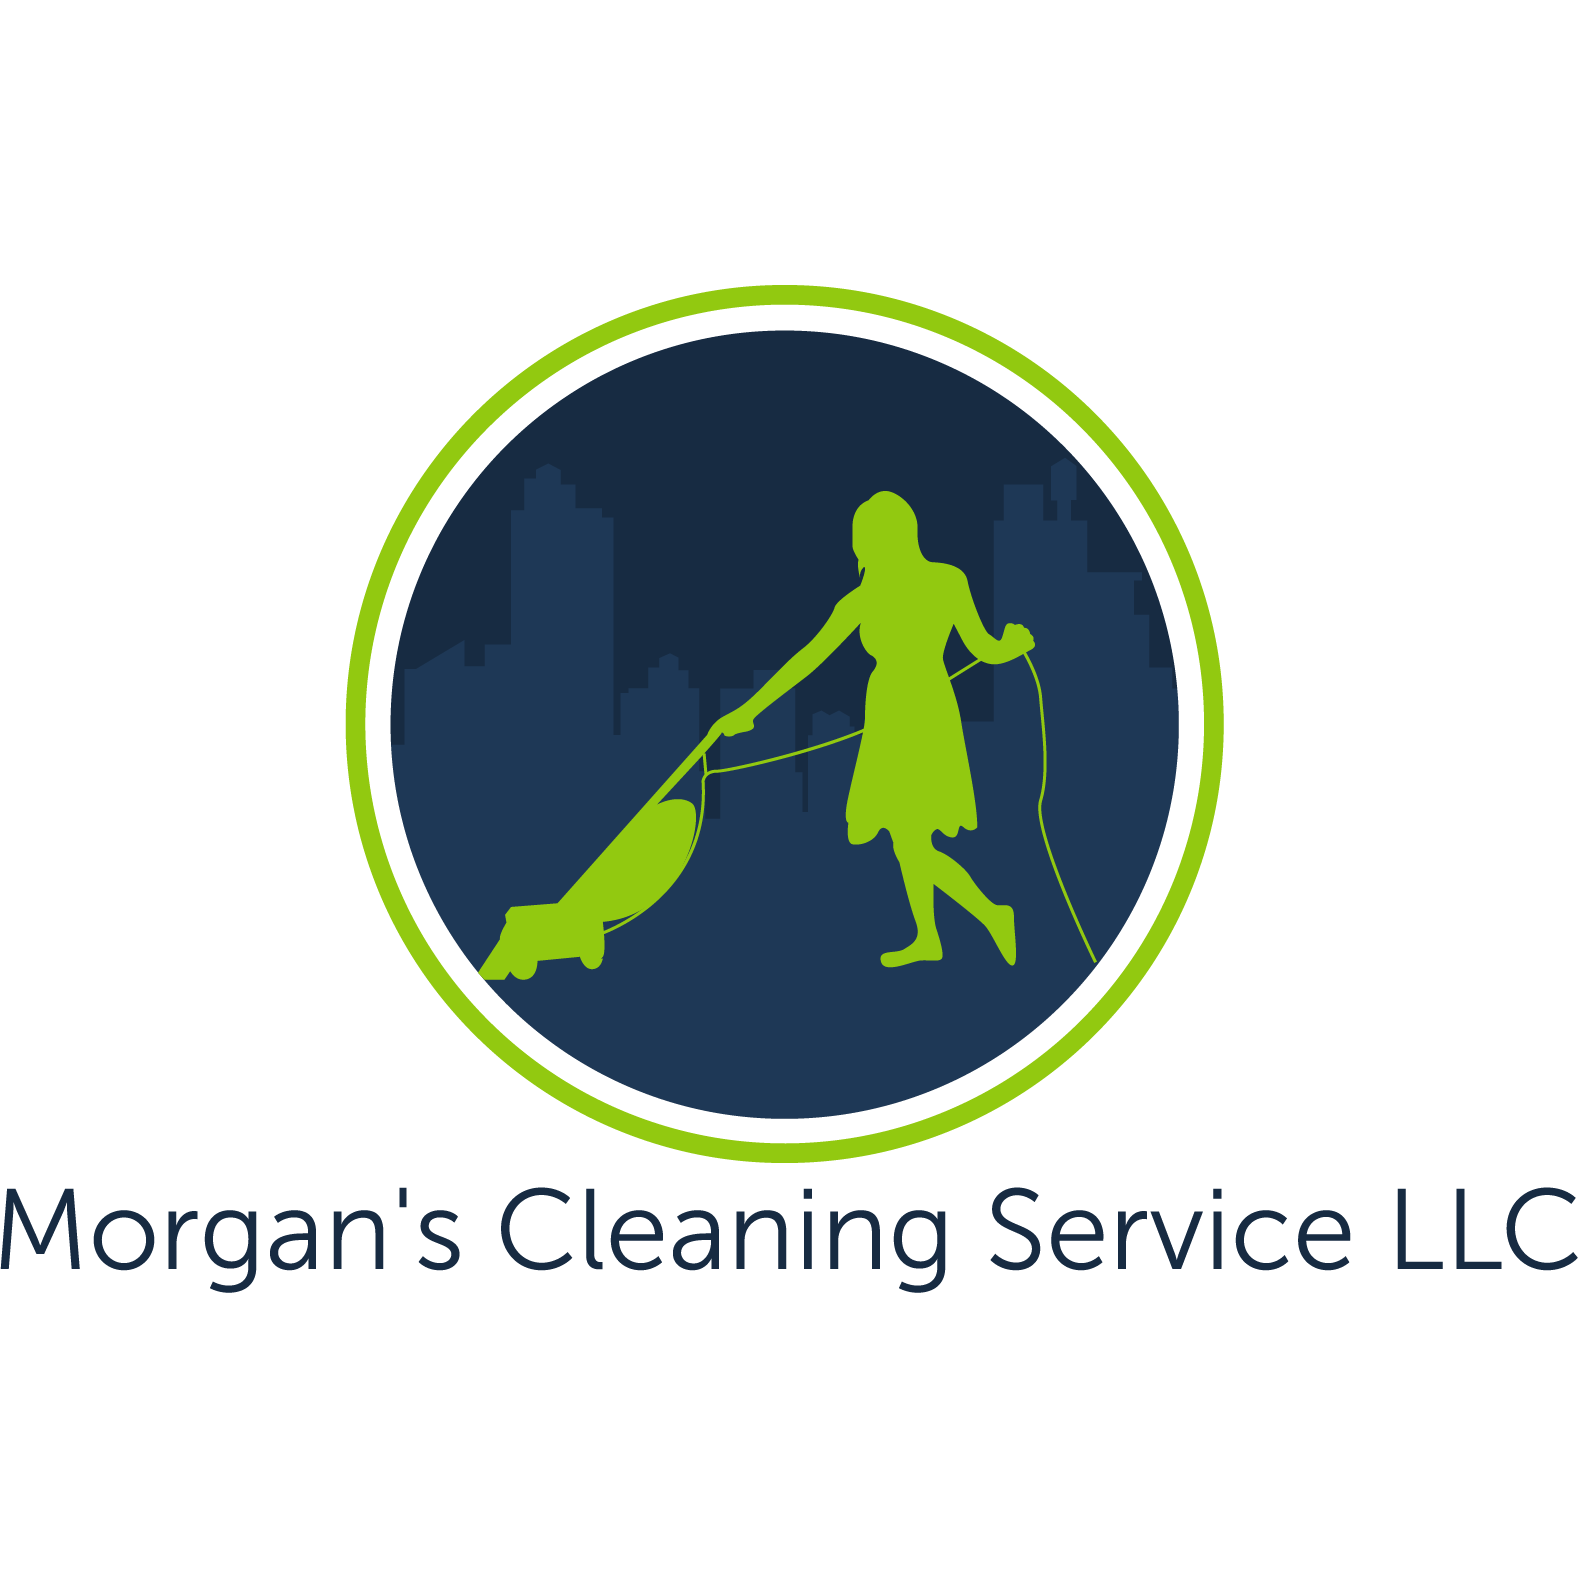 Morgans Cleaning Service